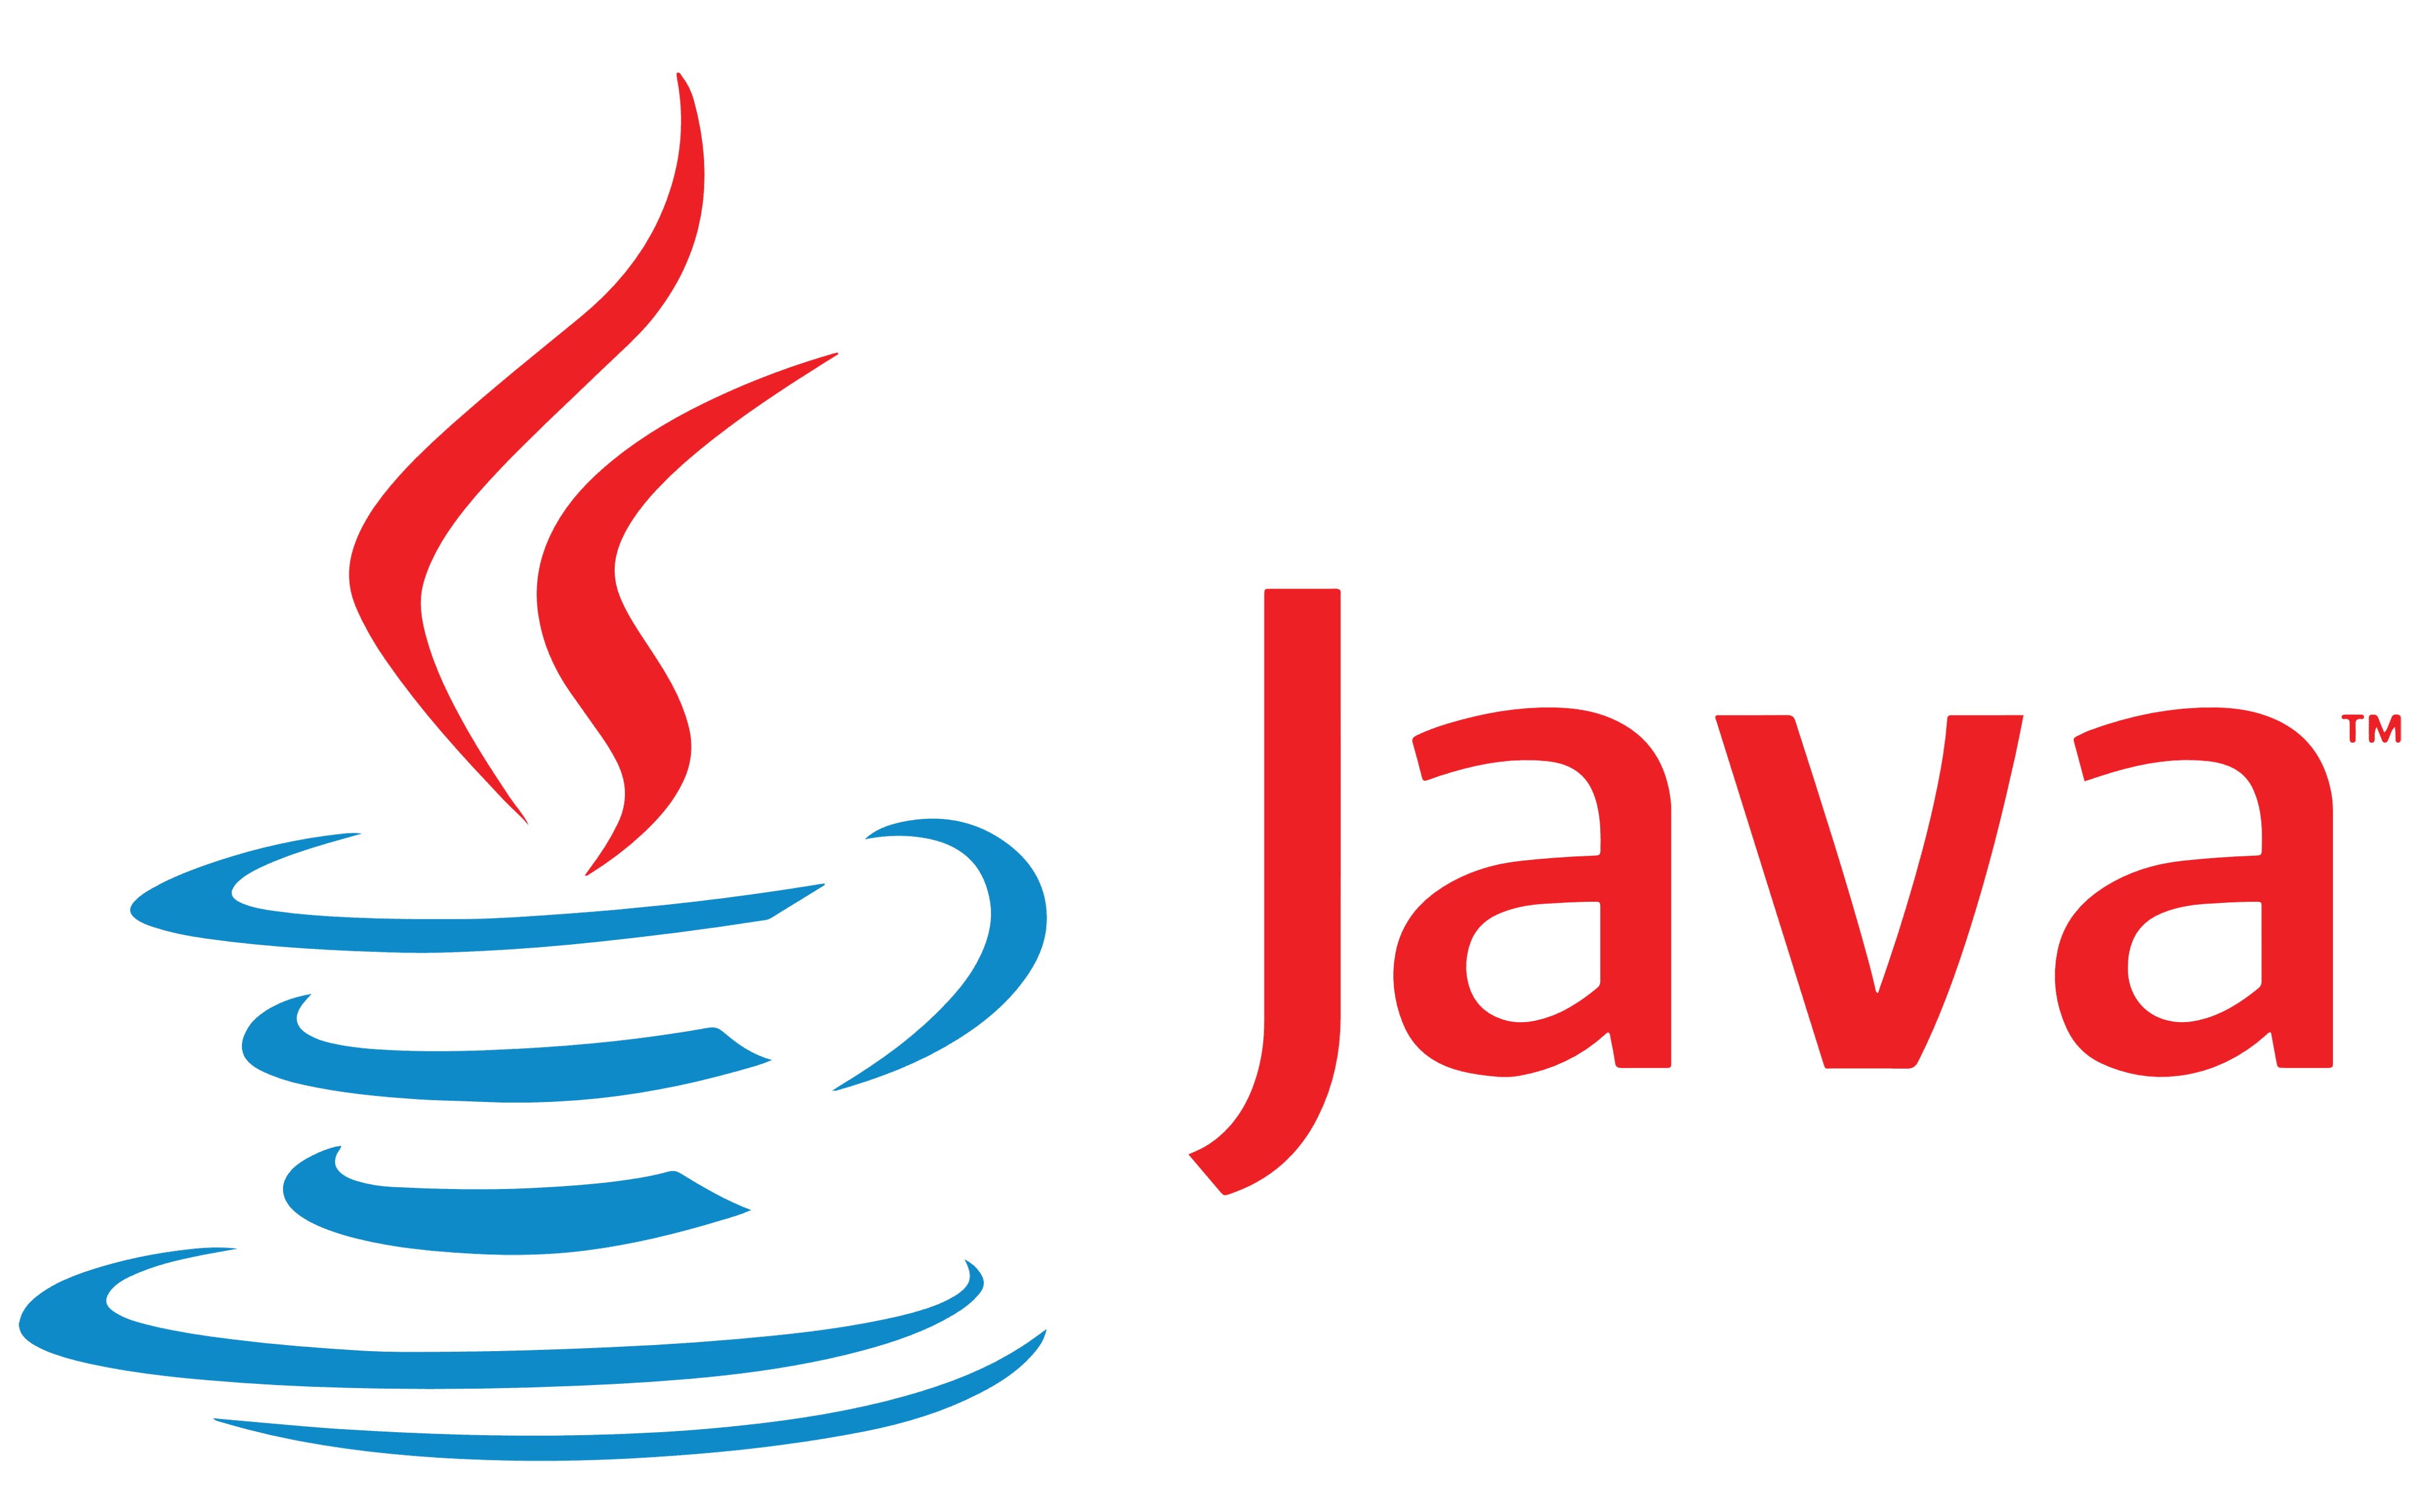 Java logo and symbol, meaning, history, PNG